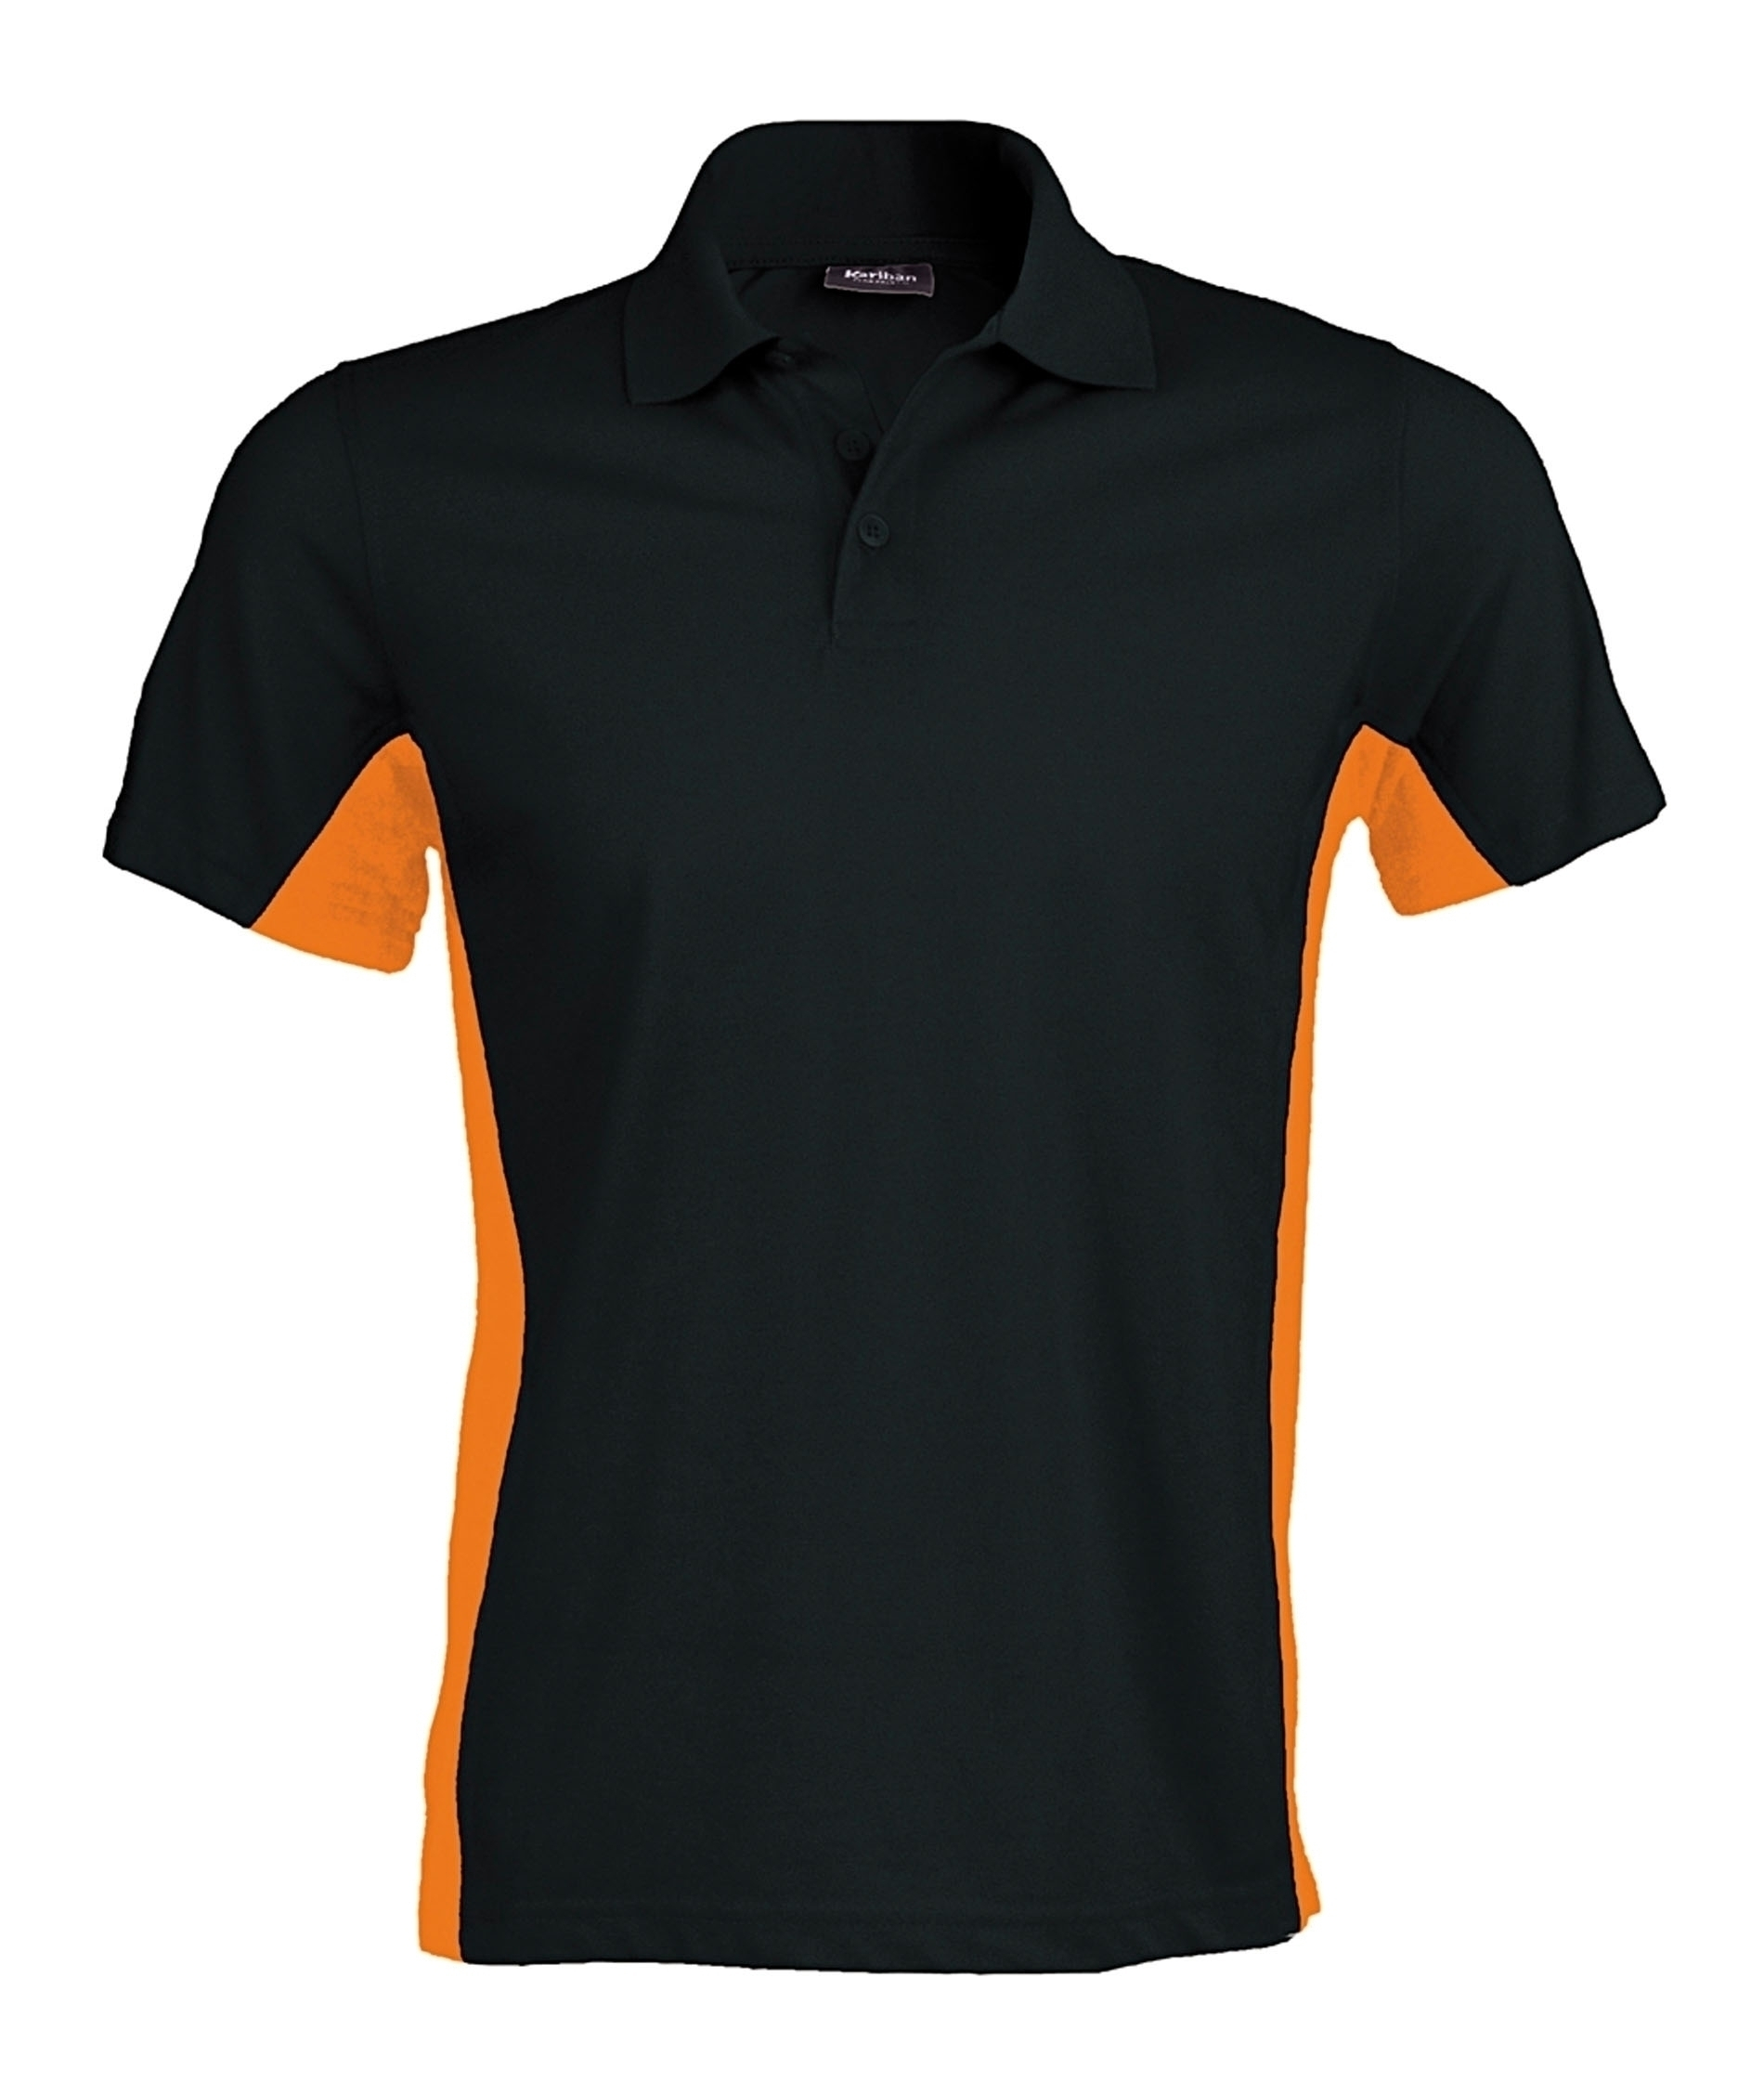 FLAG > POLO BICOLORE MANCHES COURTES Black / Orange Noir